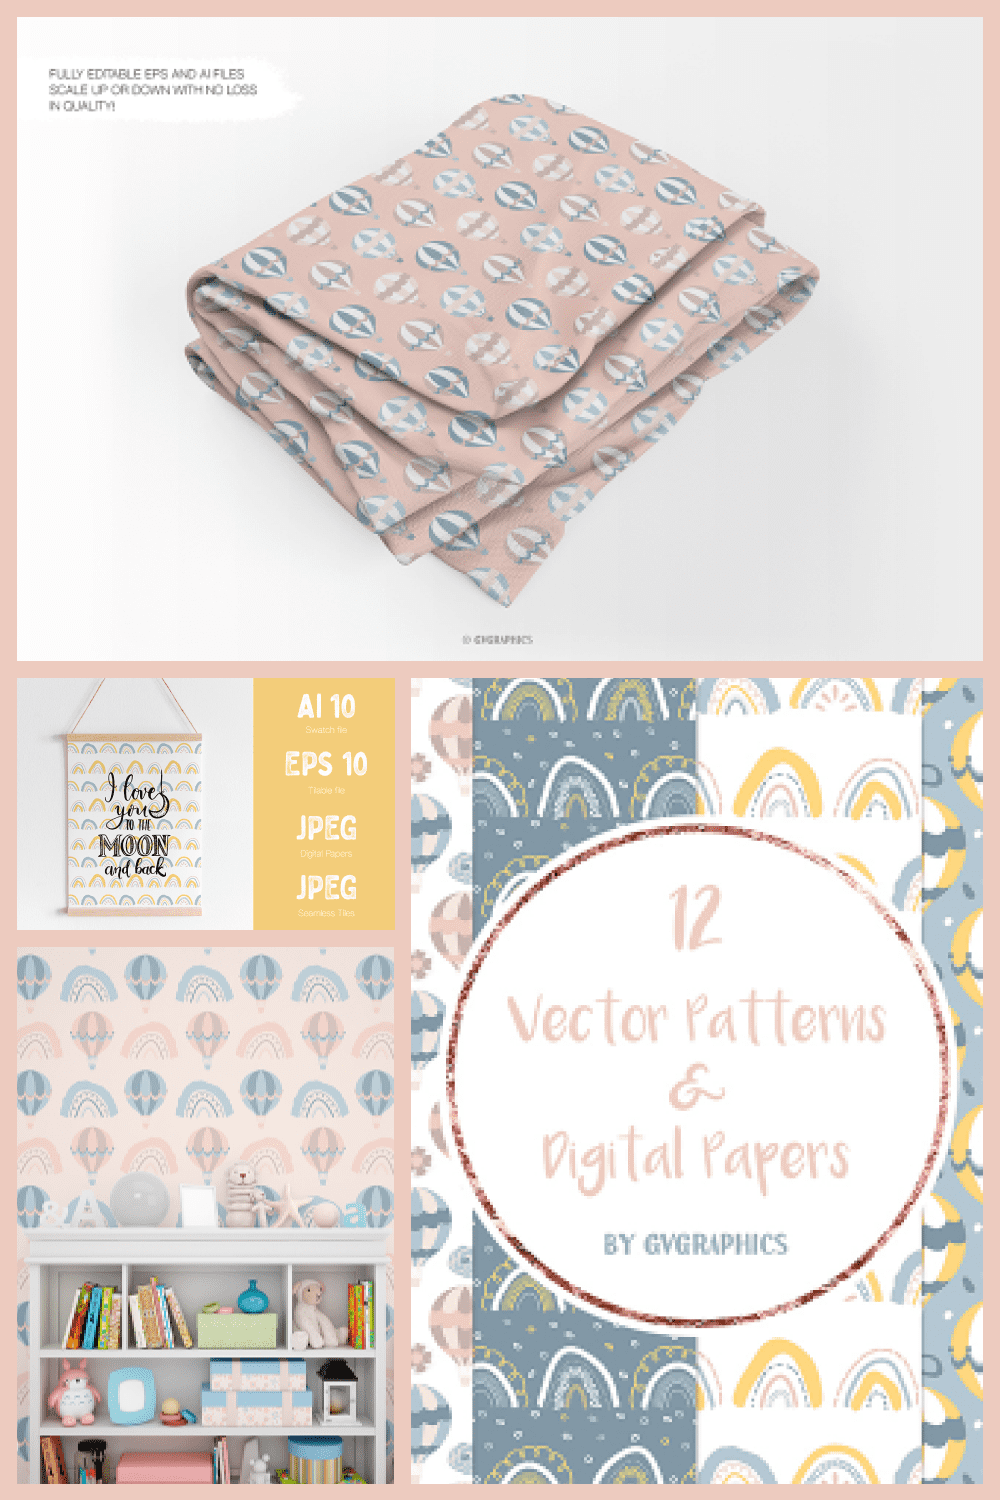 Vector Rainbows and Air Balloons Patterns and Digital Papers - MasterBundles - Pinterest Collage Image.